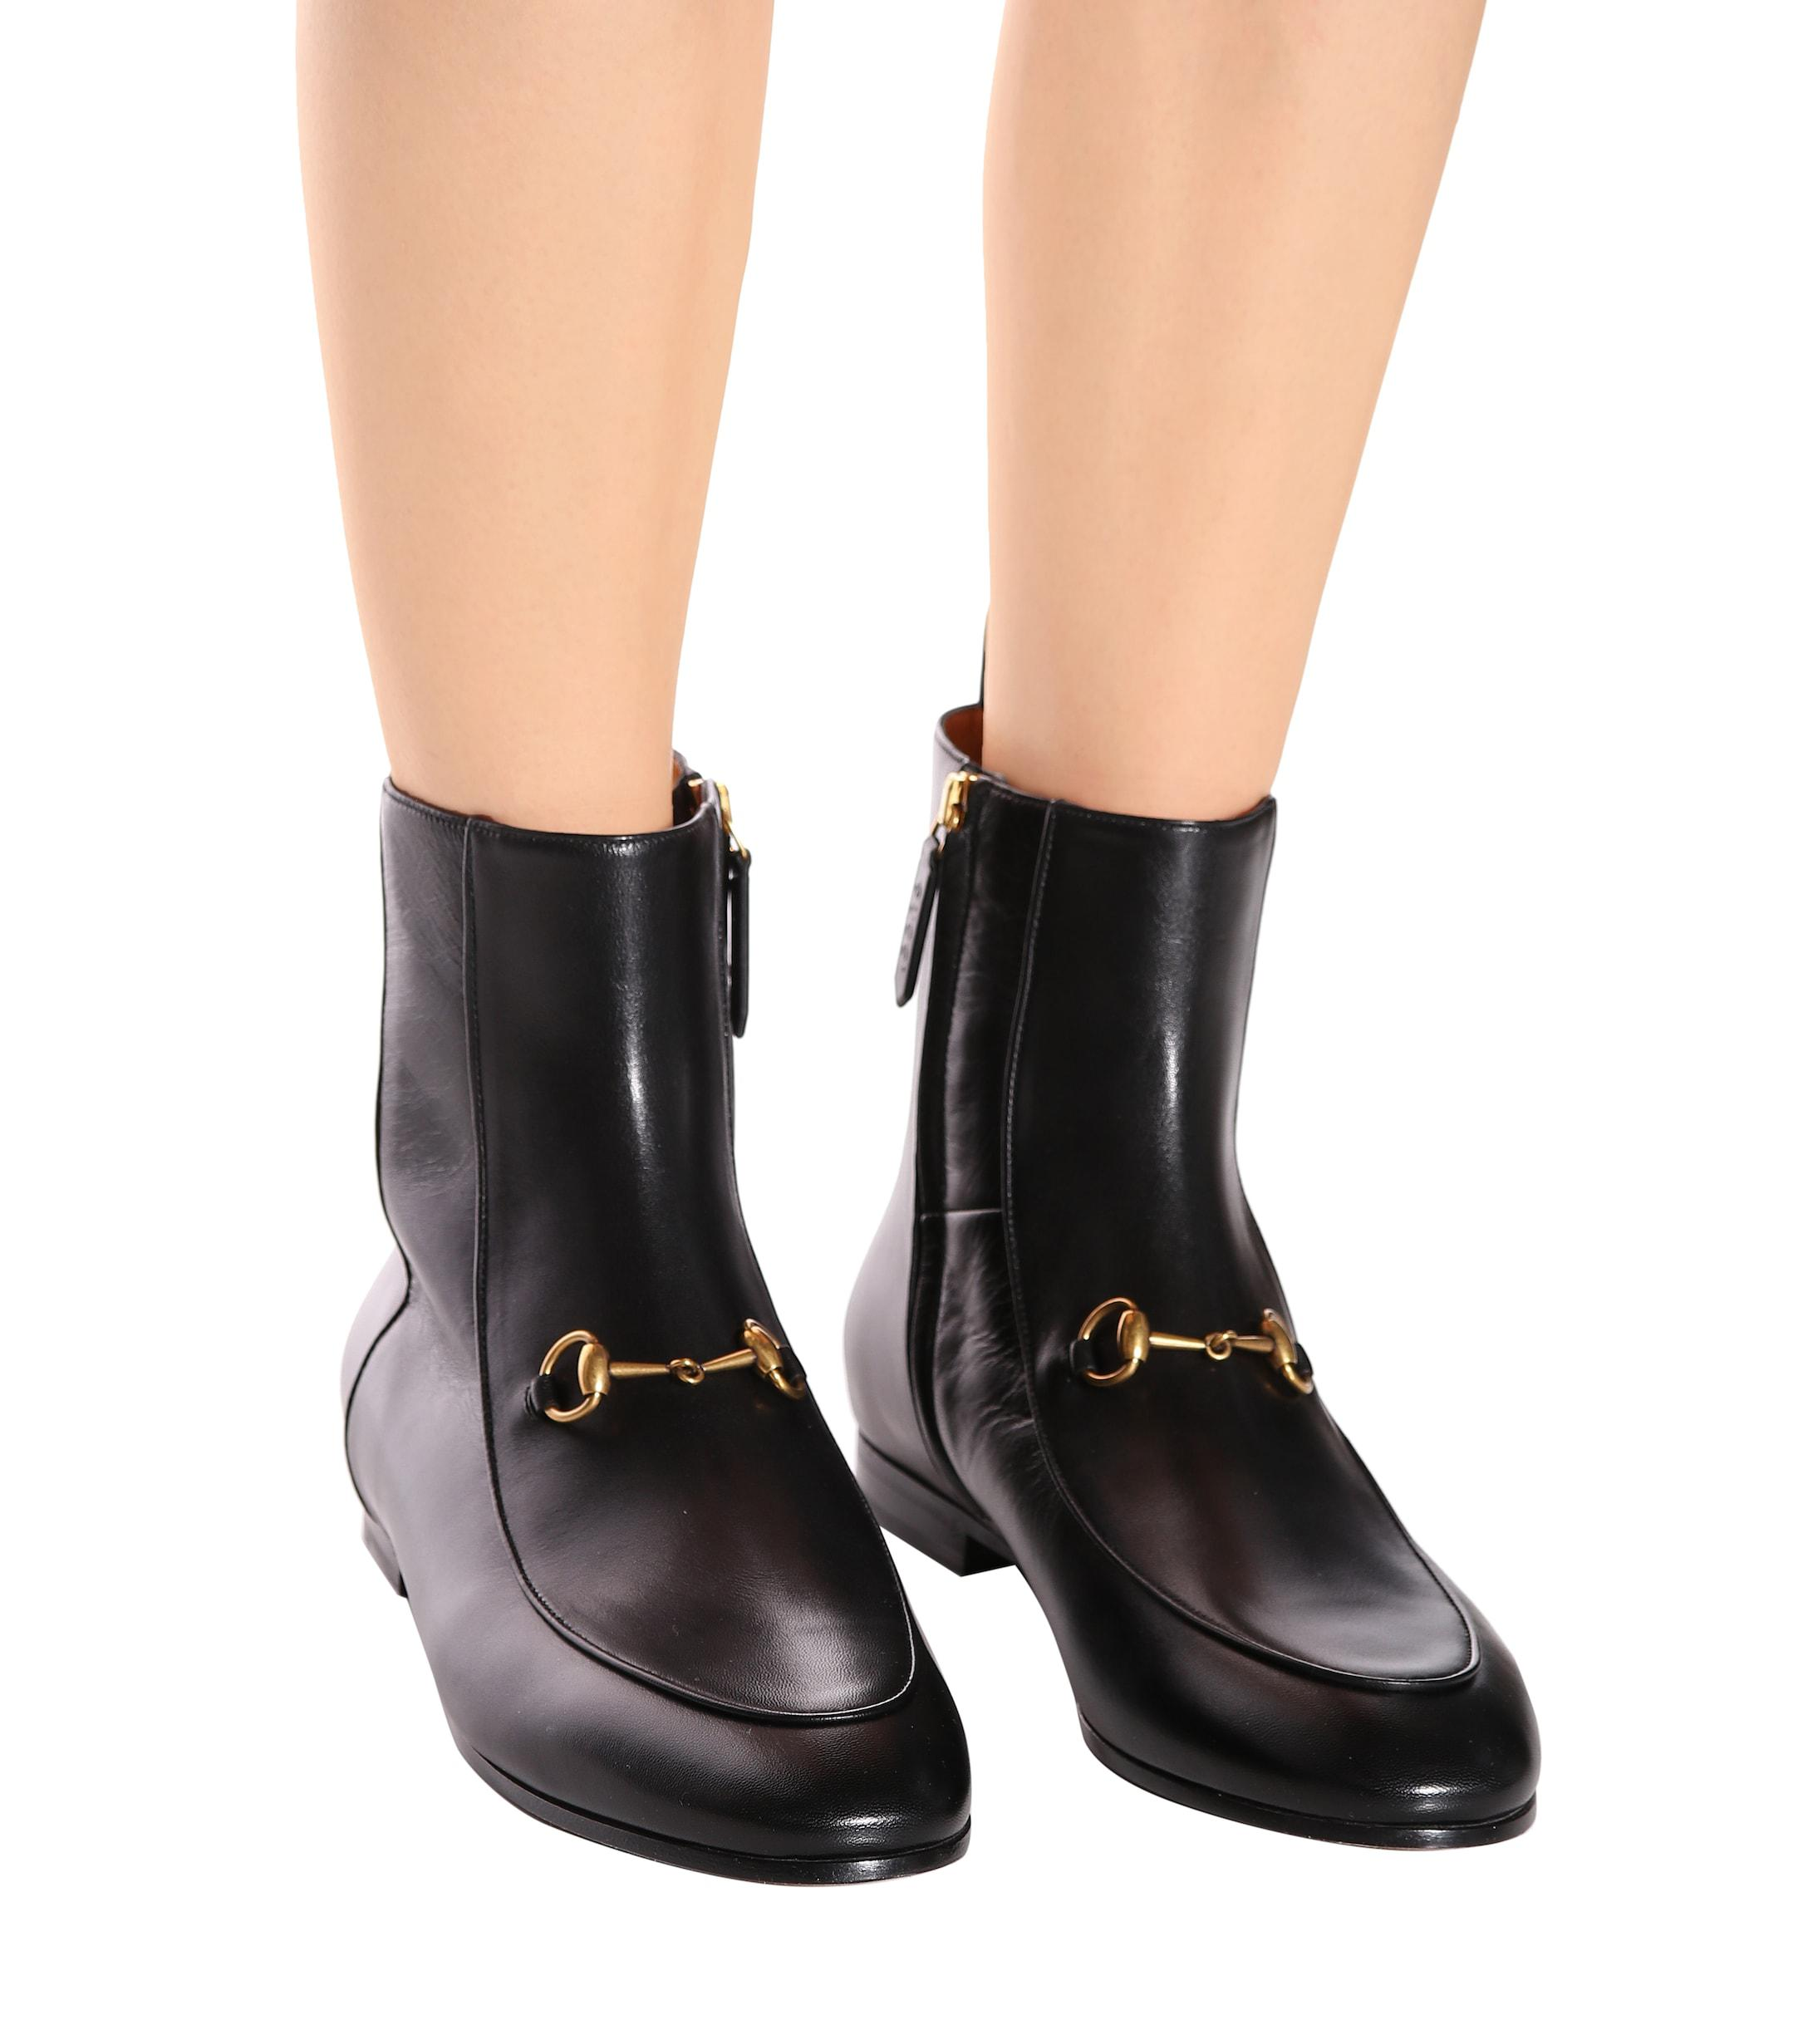 Gucci Jordaan Leather Ankle Boot in